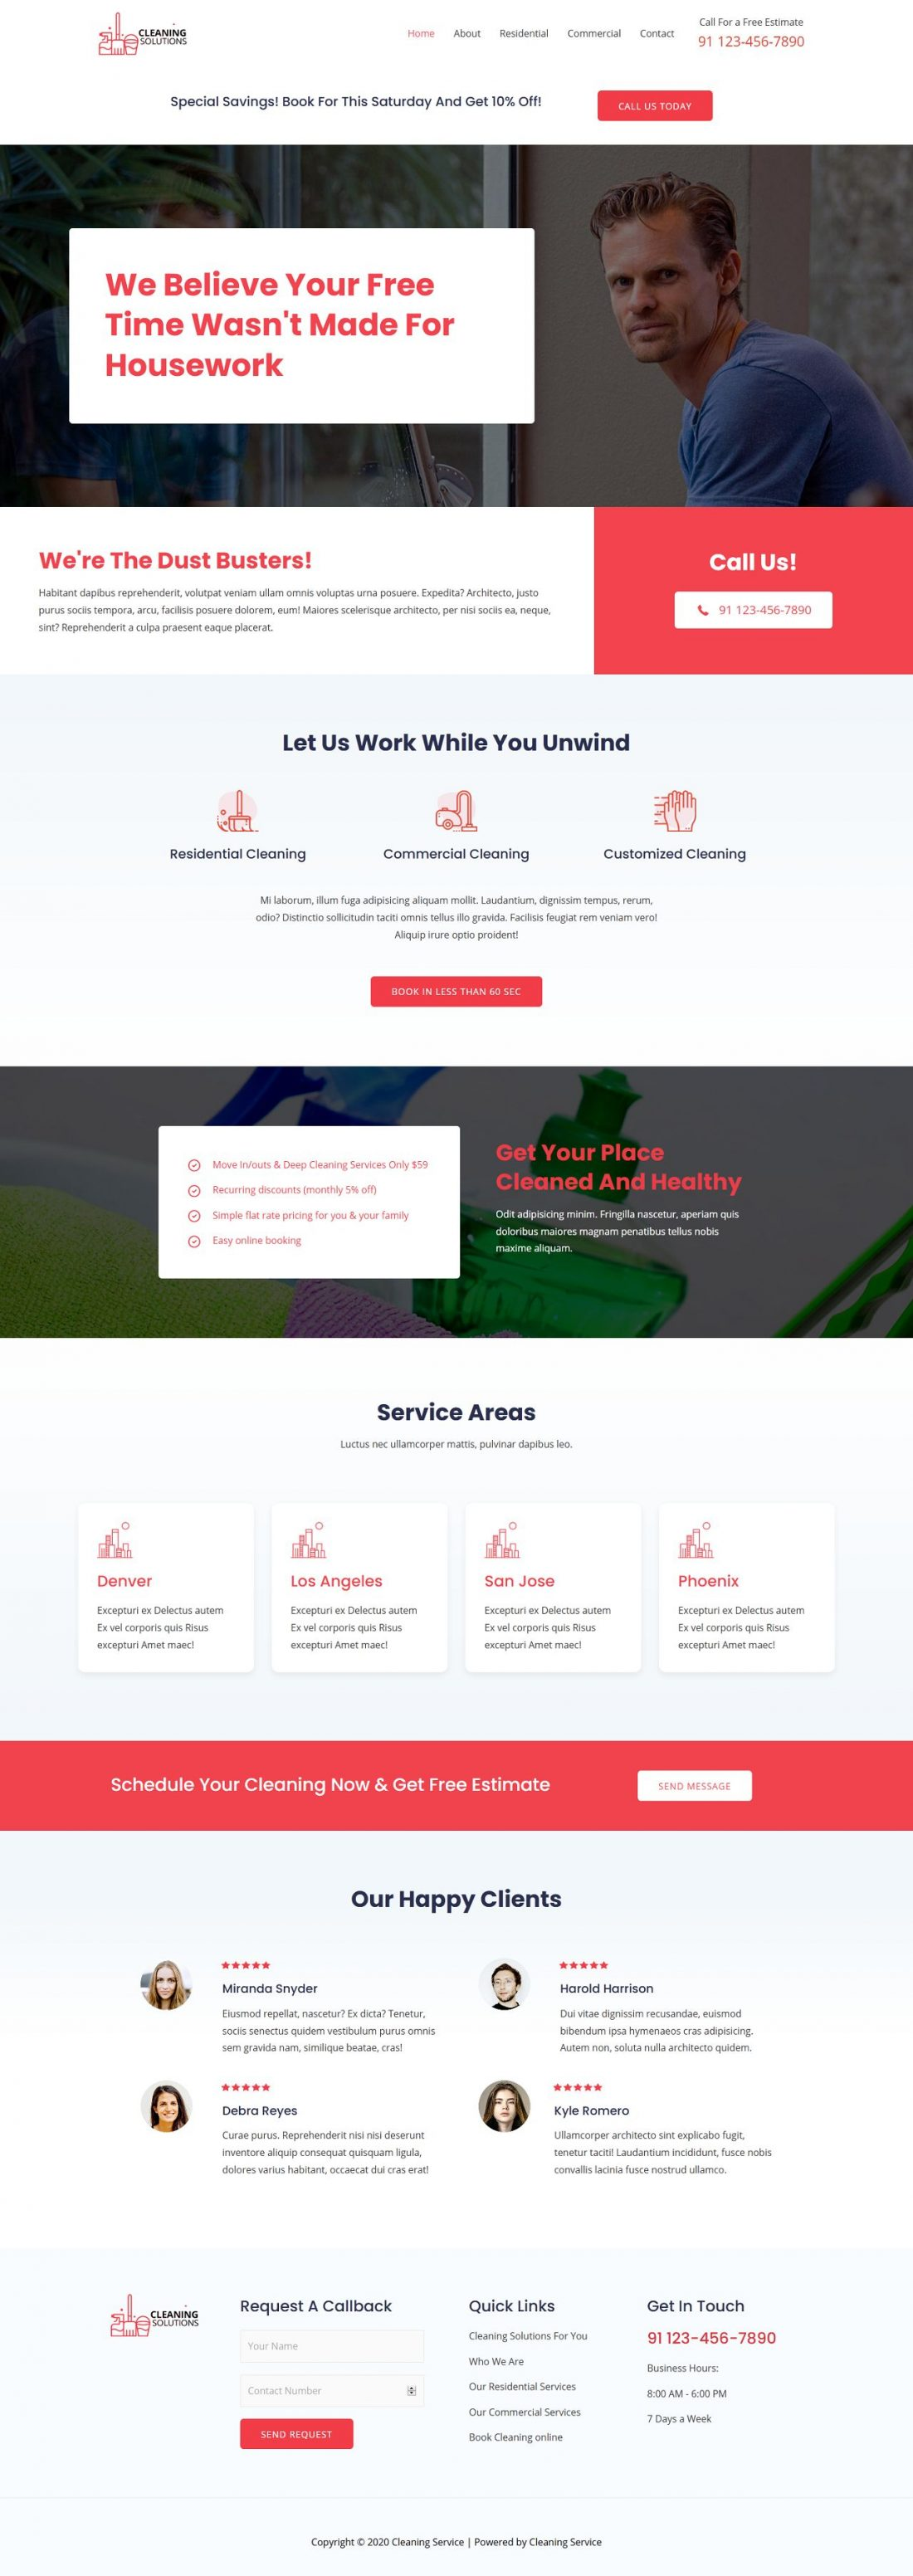 Fagowi.com Website Design Templates For Cleaning Service Residential and Commercial - Home Page Image